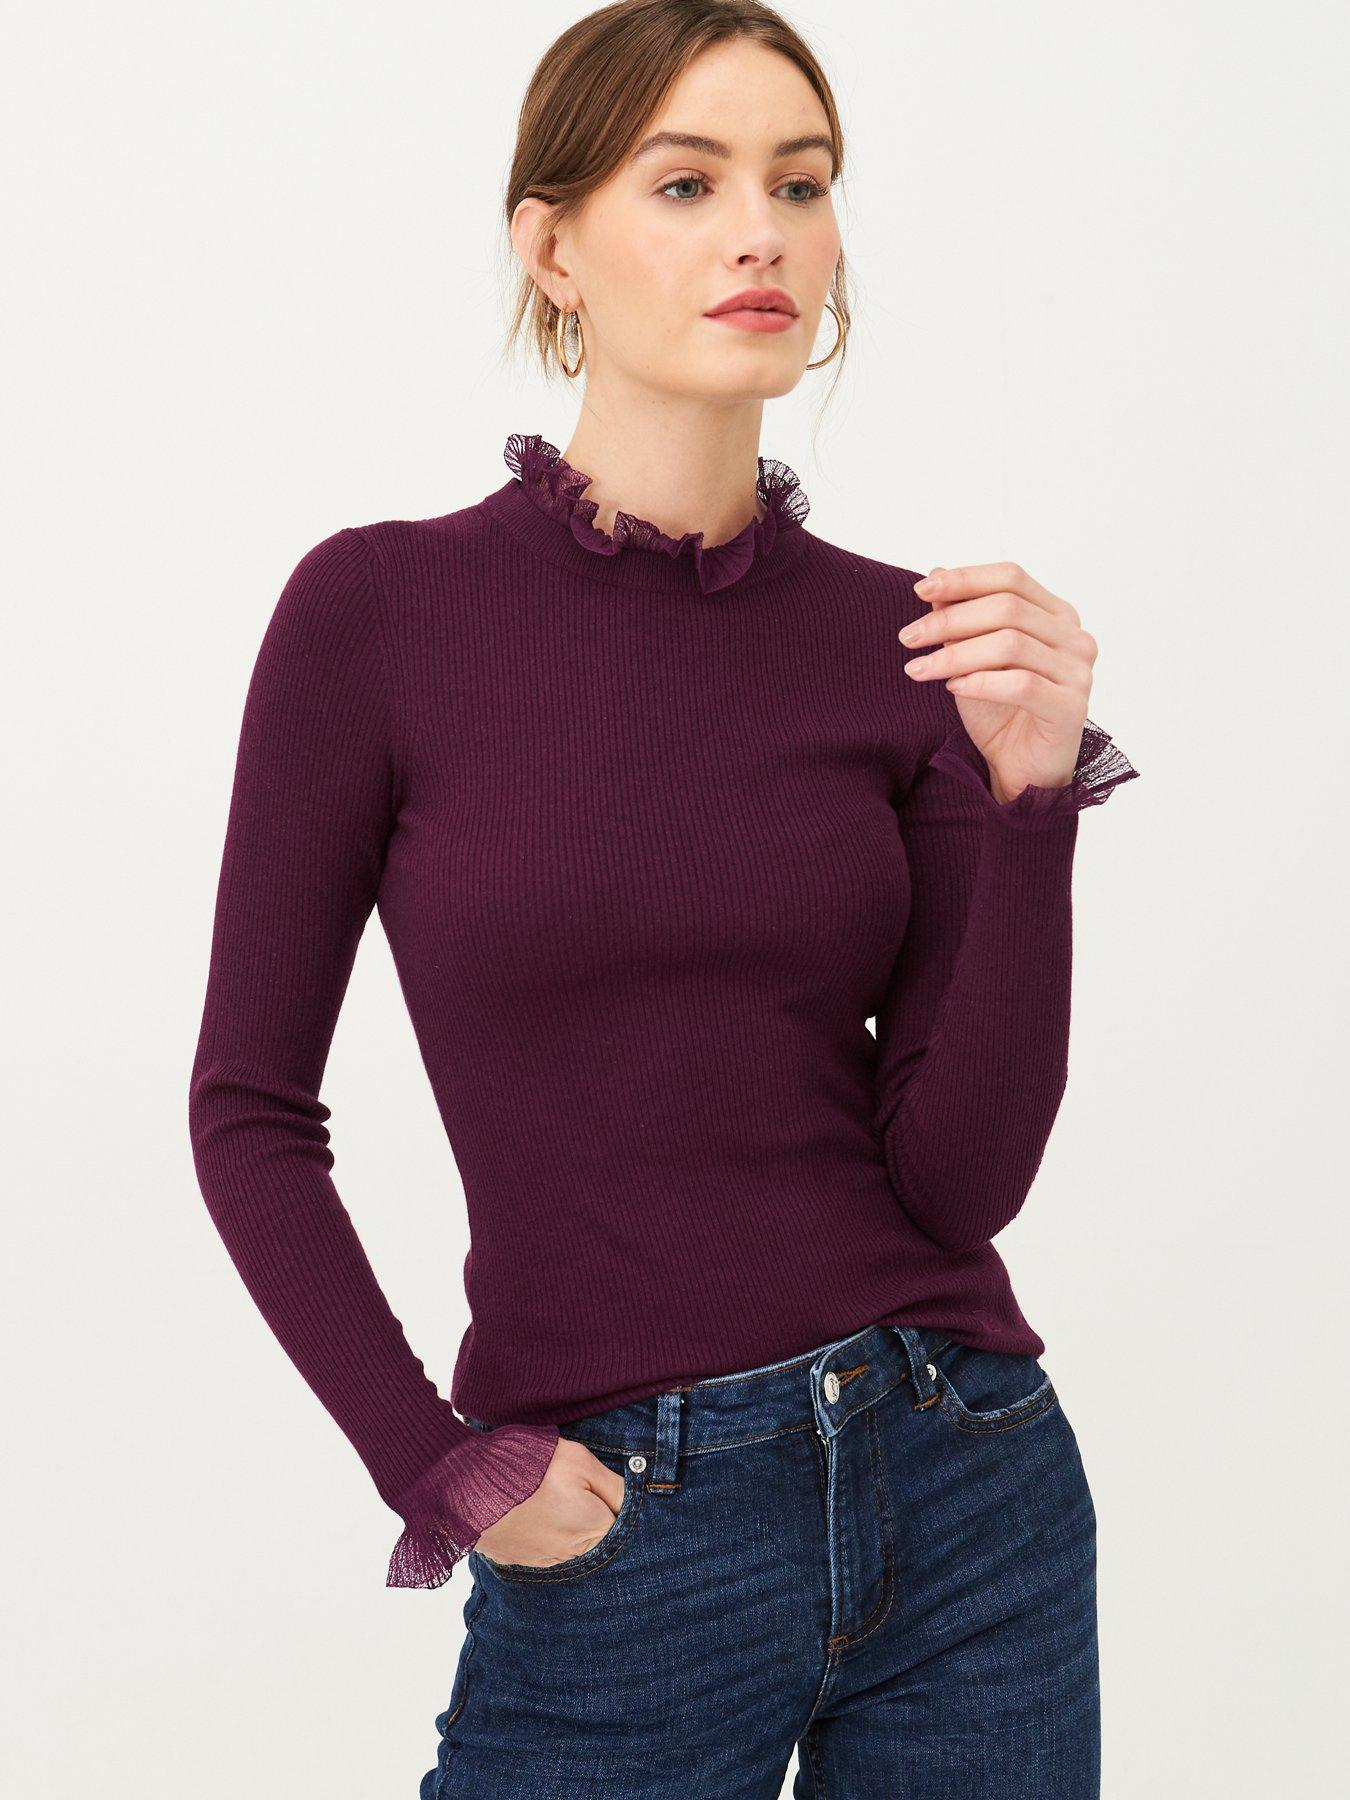 Ladies Off Shoulder Chunky Knitted Peplum Jumper Womens Ruffle Frill Fancy Top